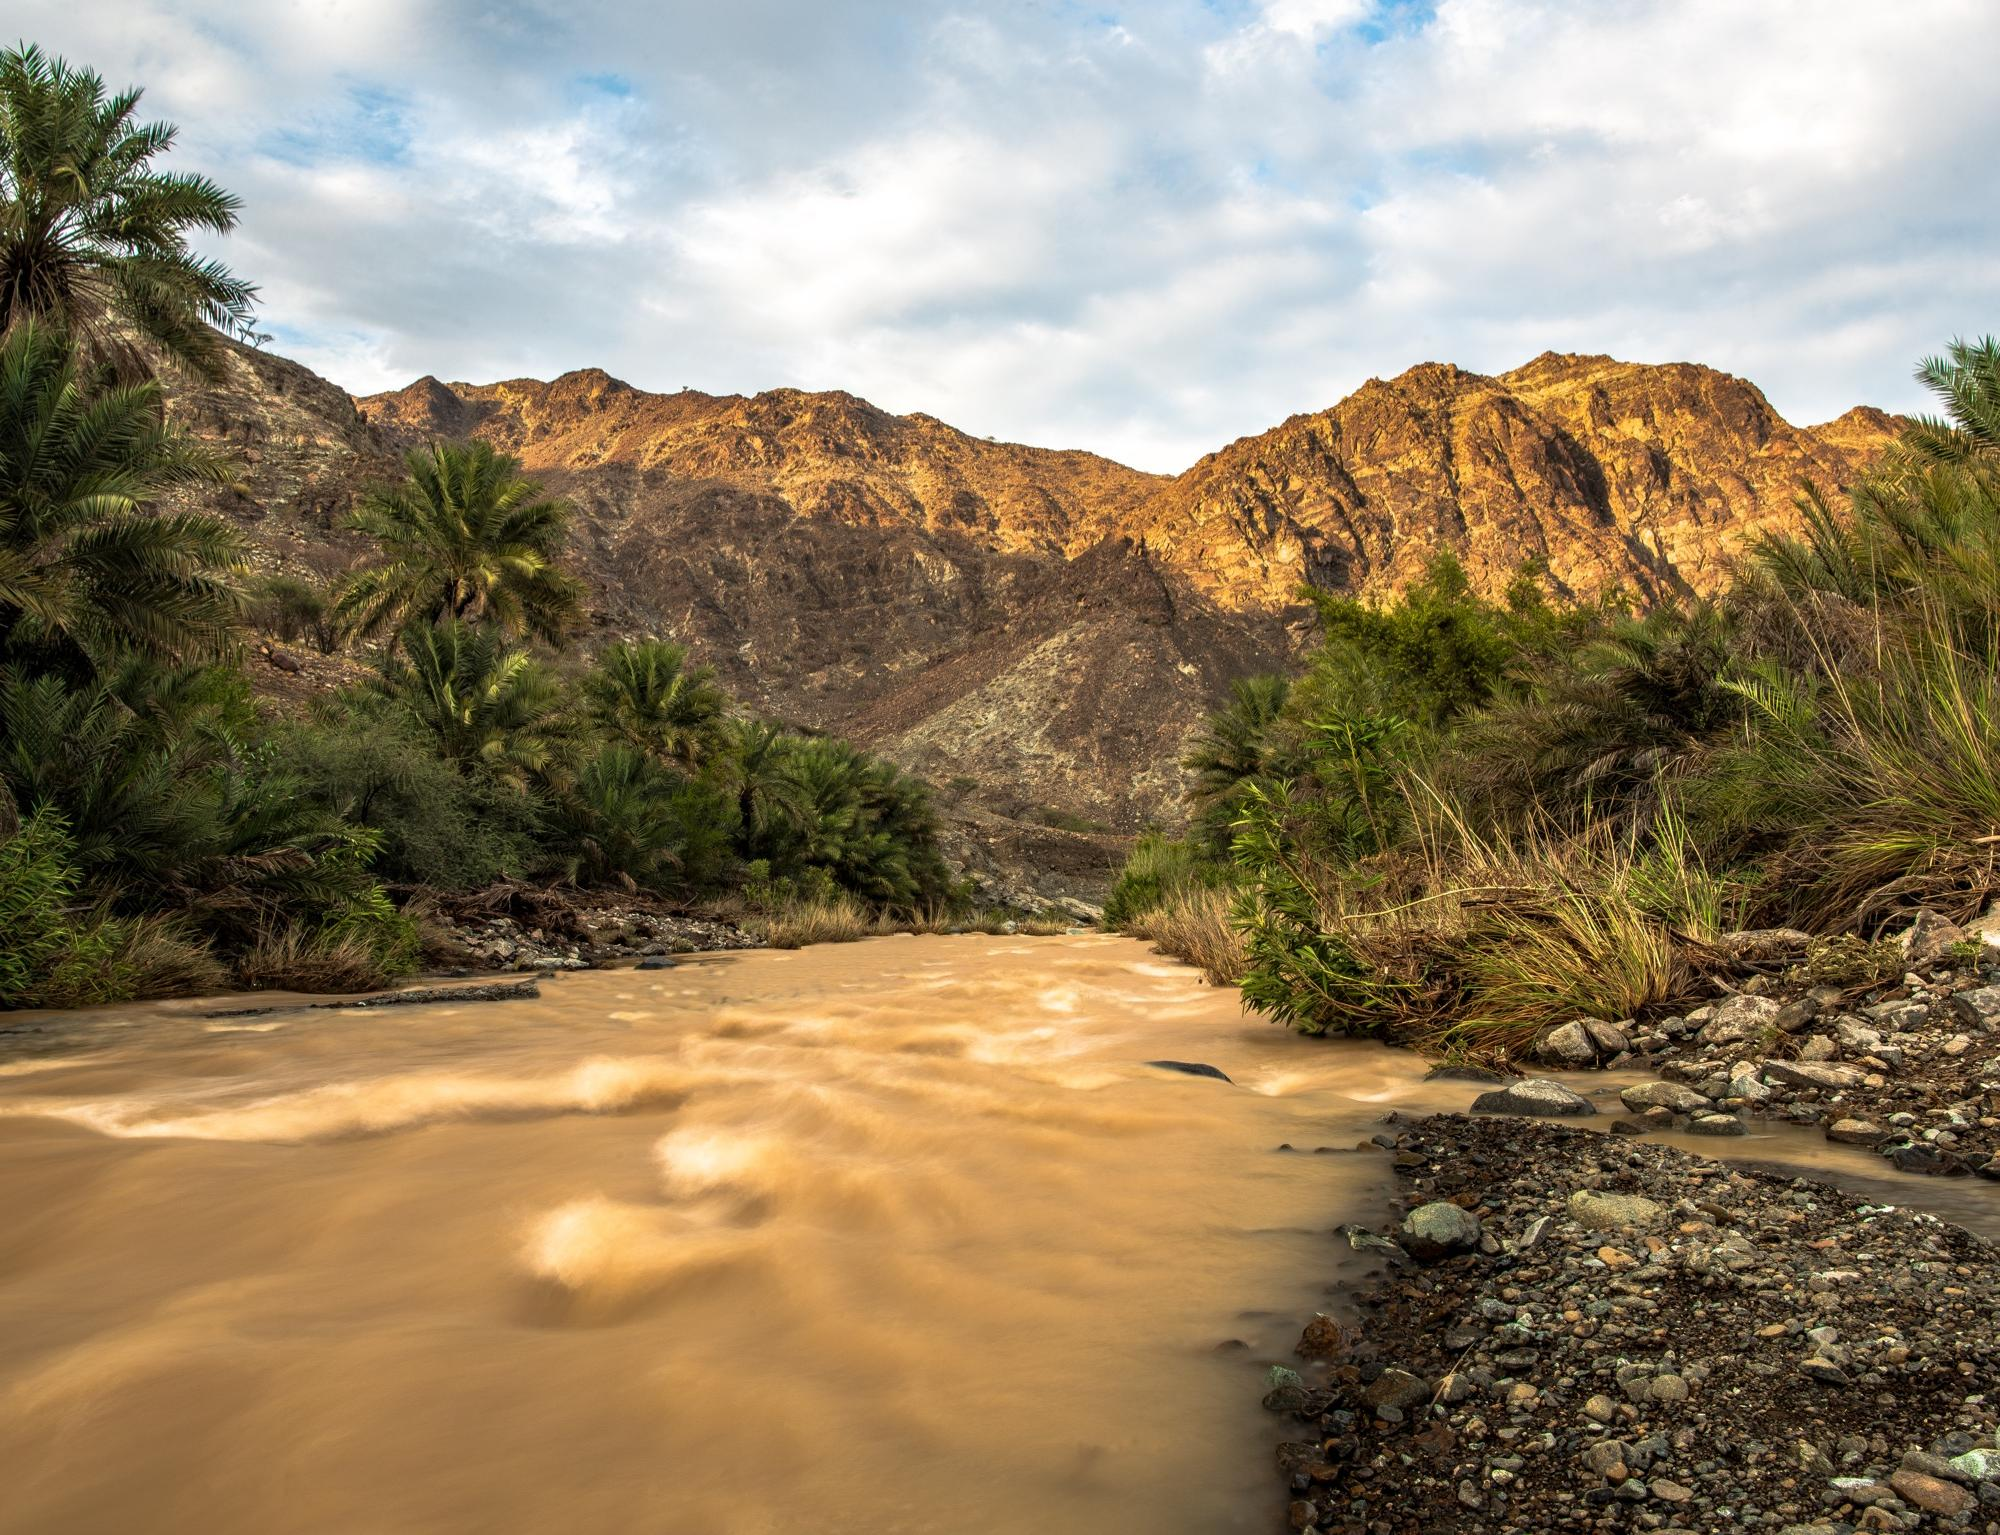 Muddy river - Oman